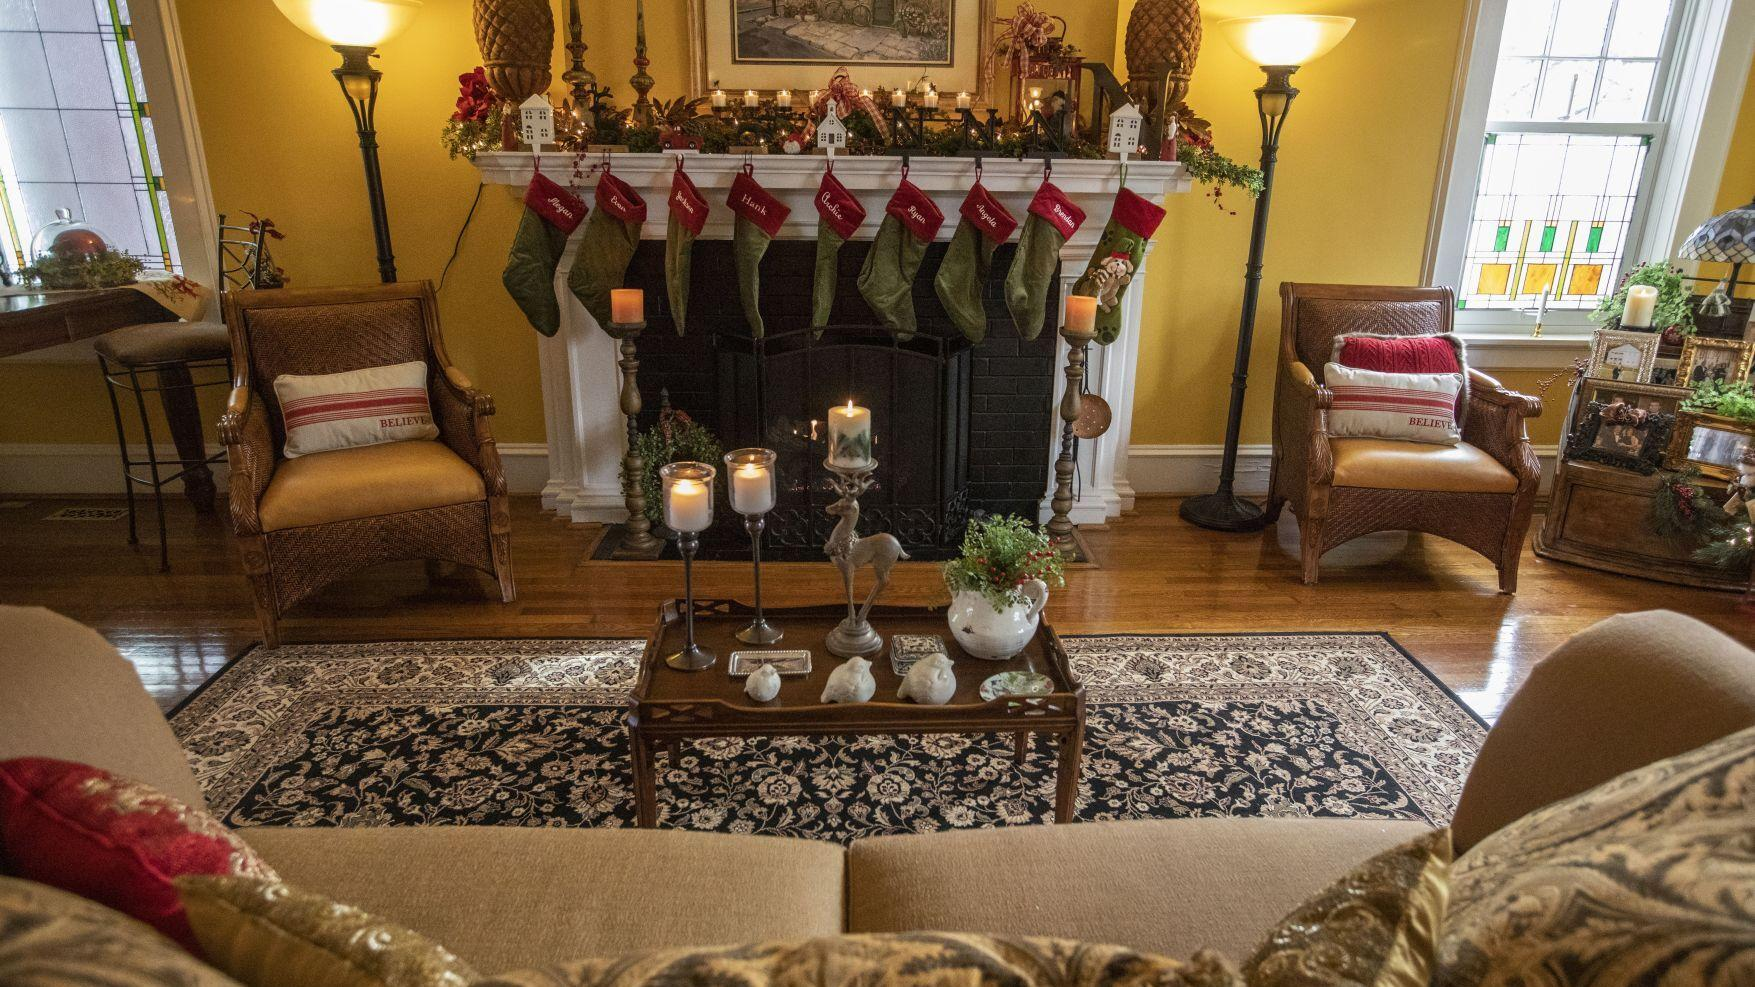 At Home: Niebruegge home decked in holiday cheer